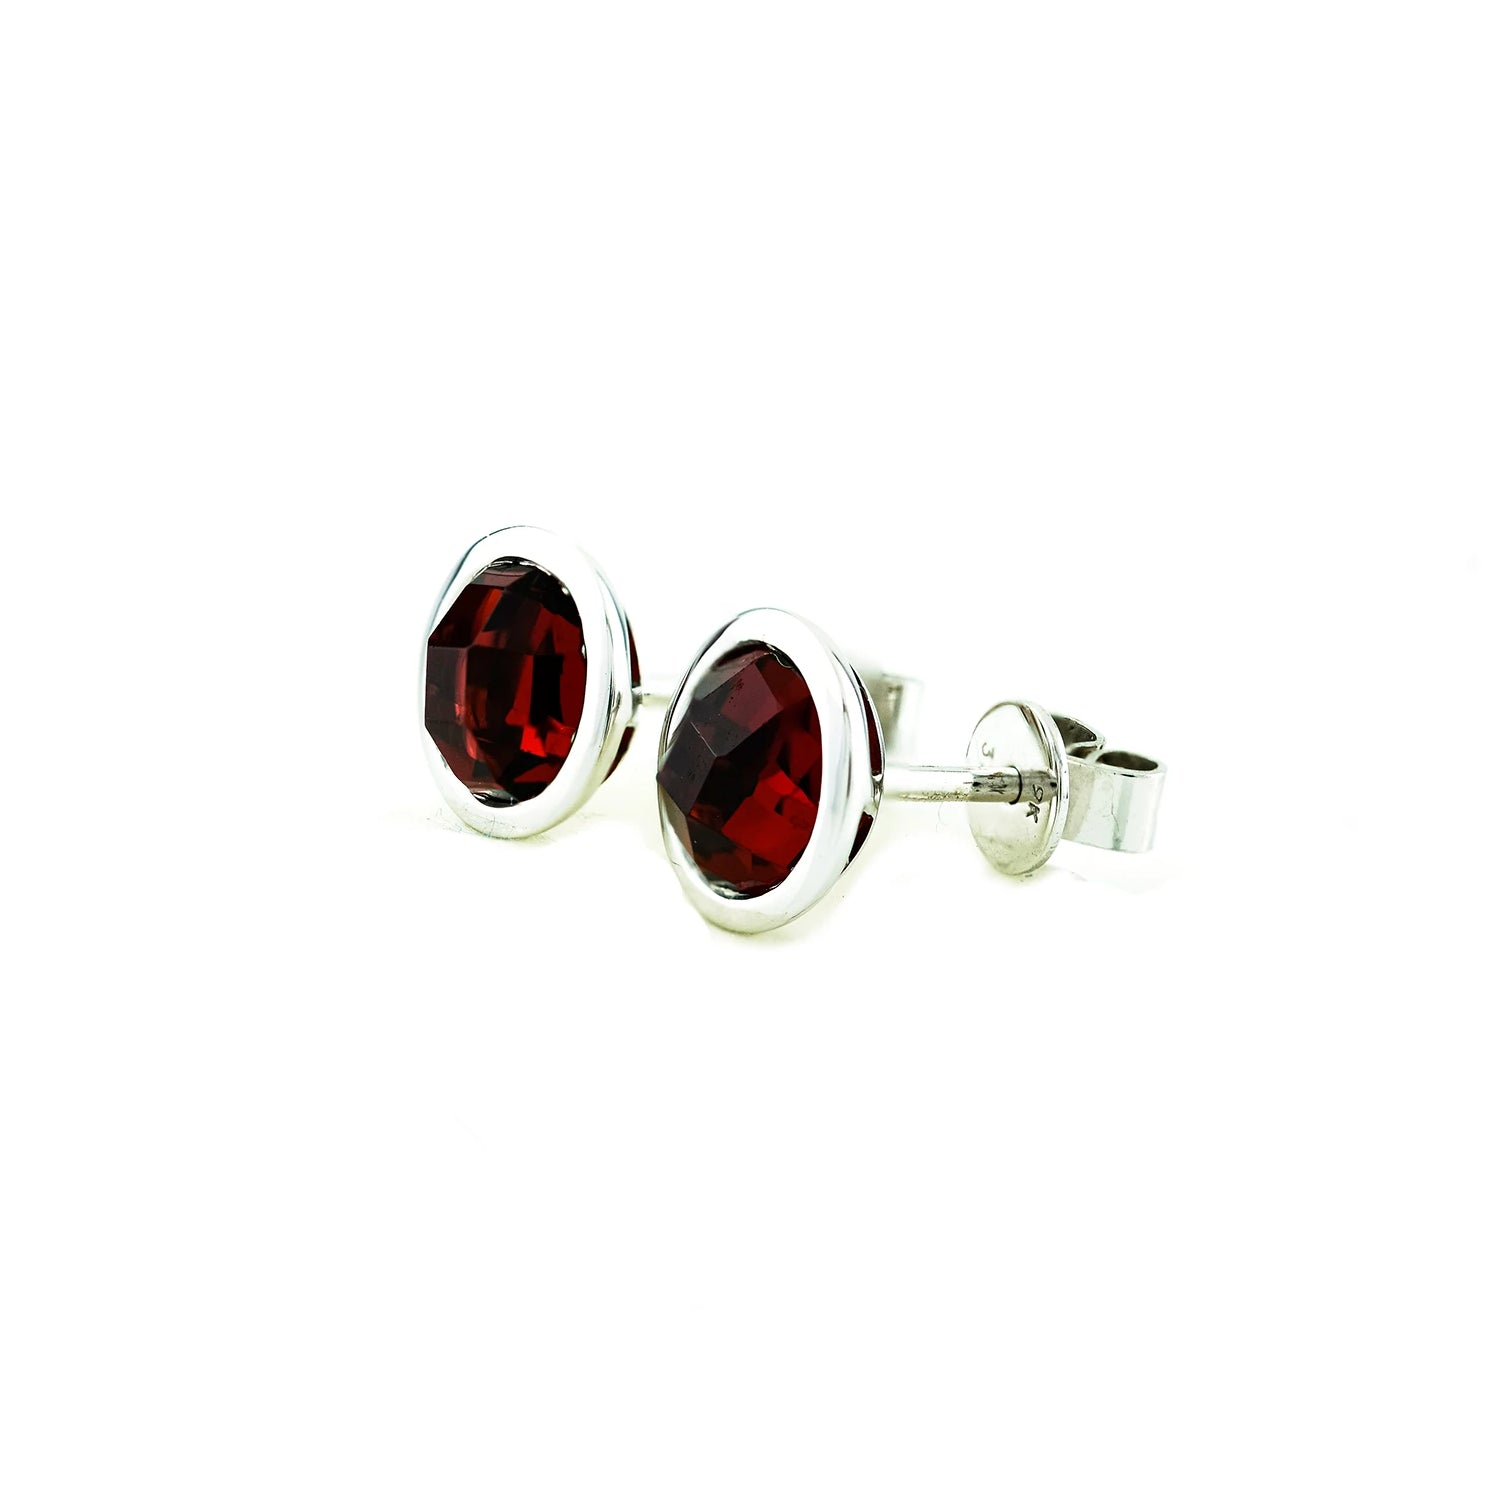 Stud earrings with a round red garnets rub over set into 9ct white gold.